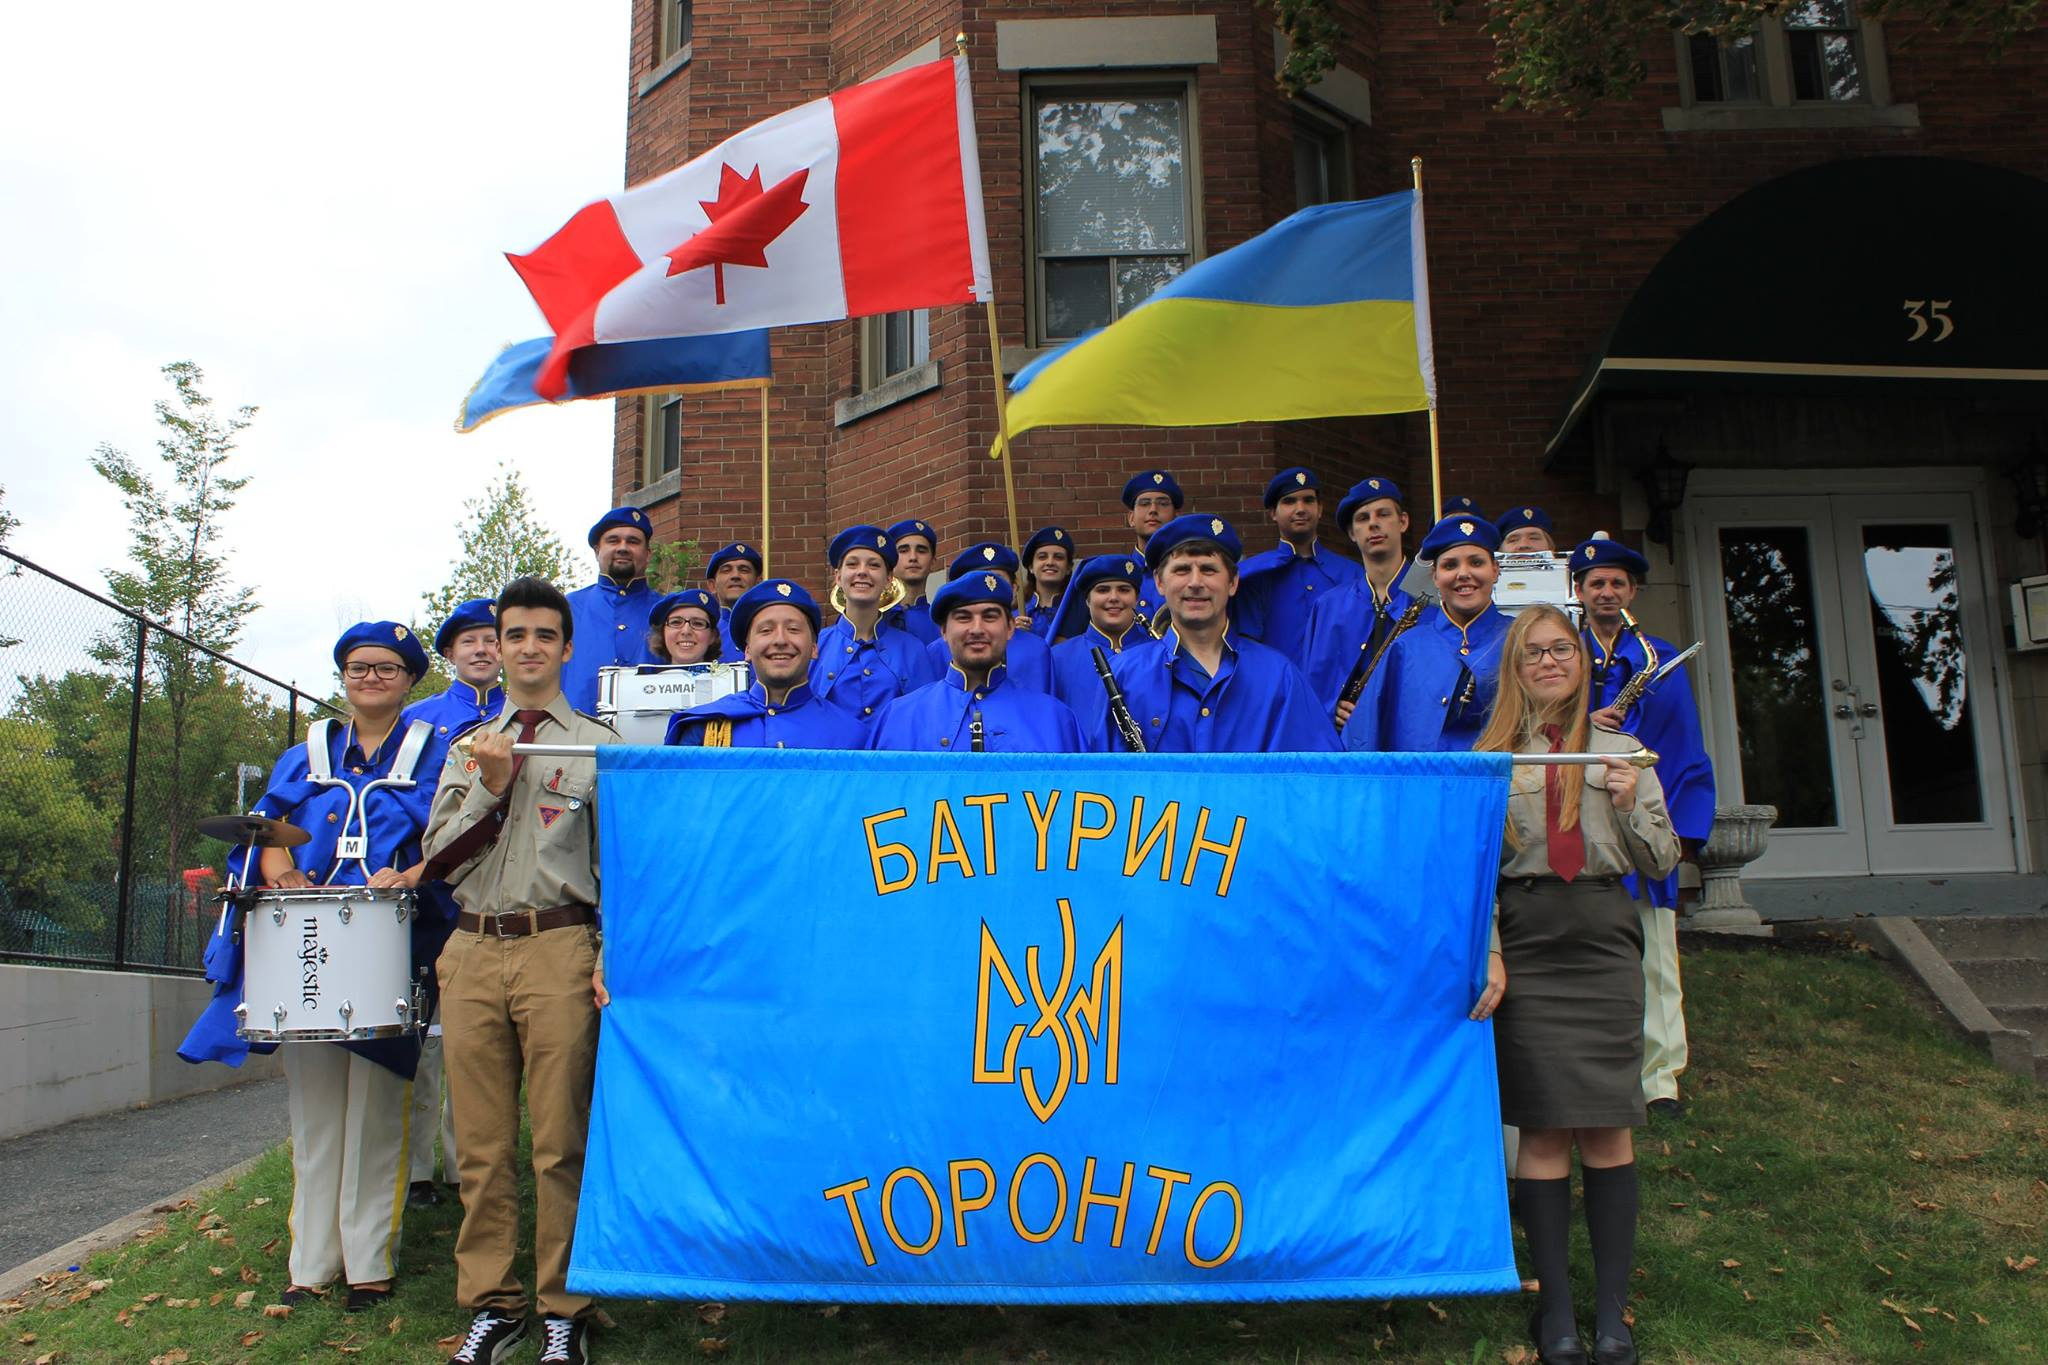 Bloor West Village Toronto Ukrainian Festival - Sep 19, 2015